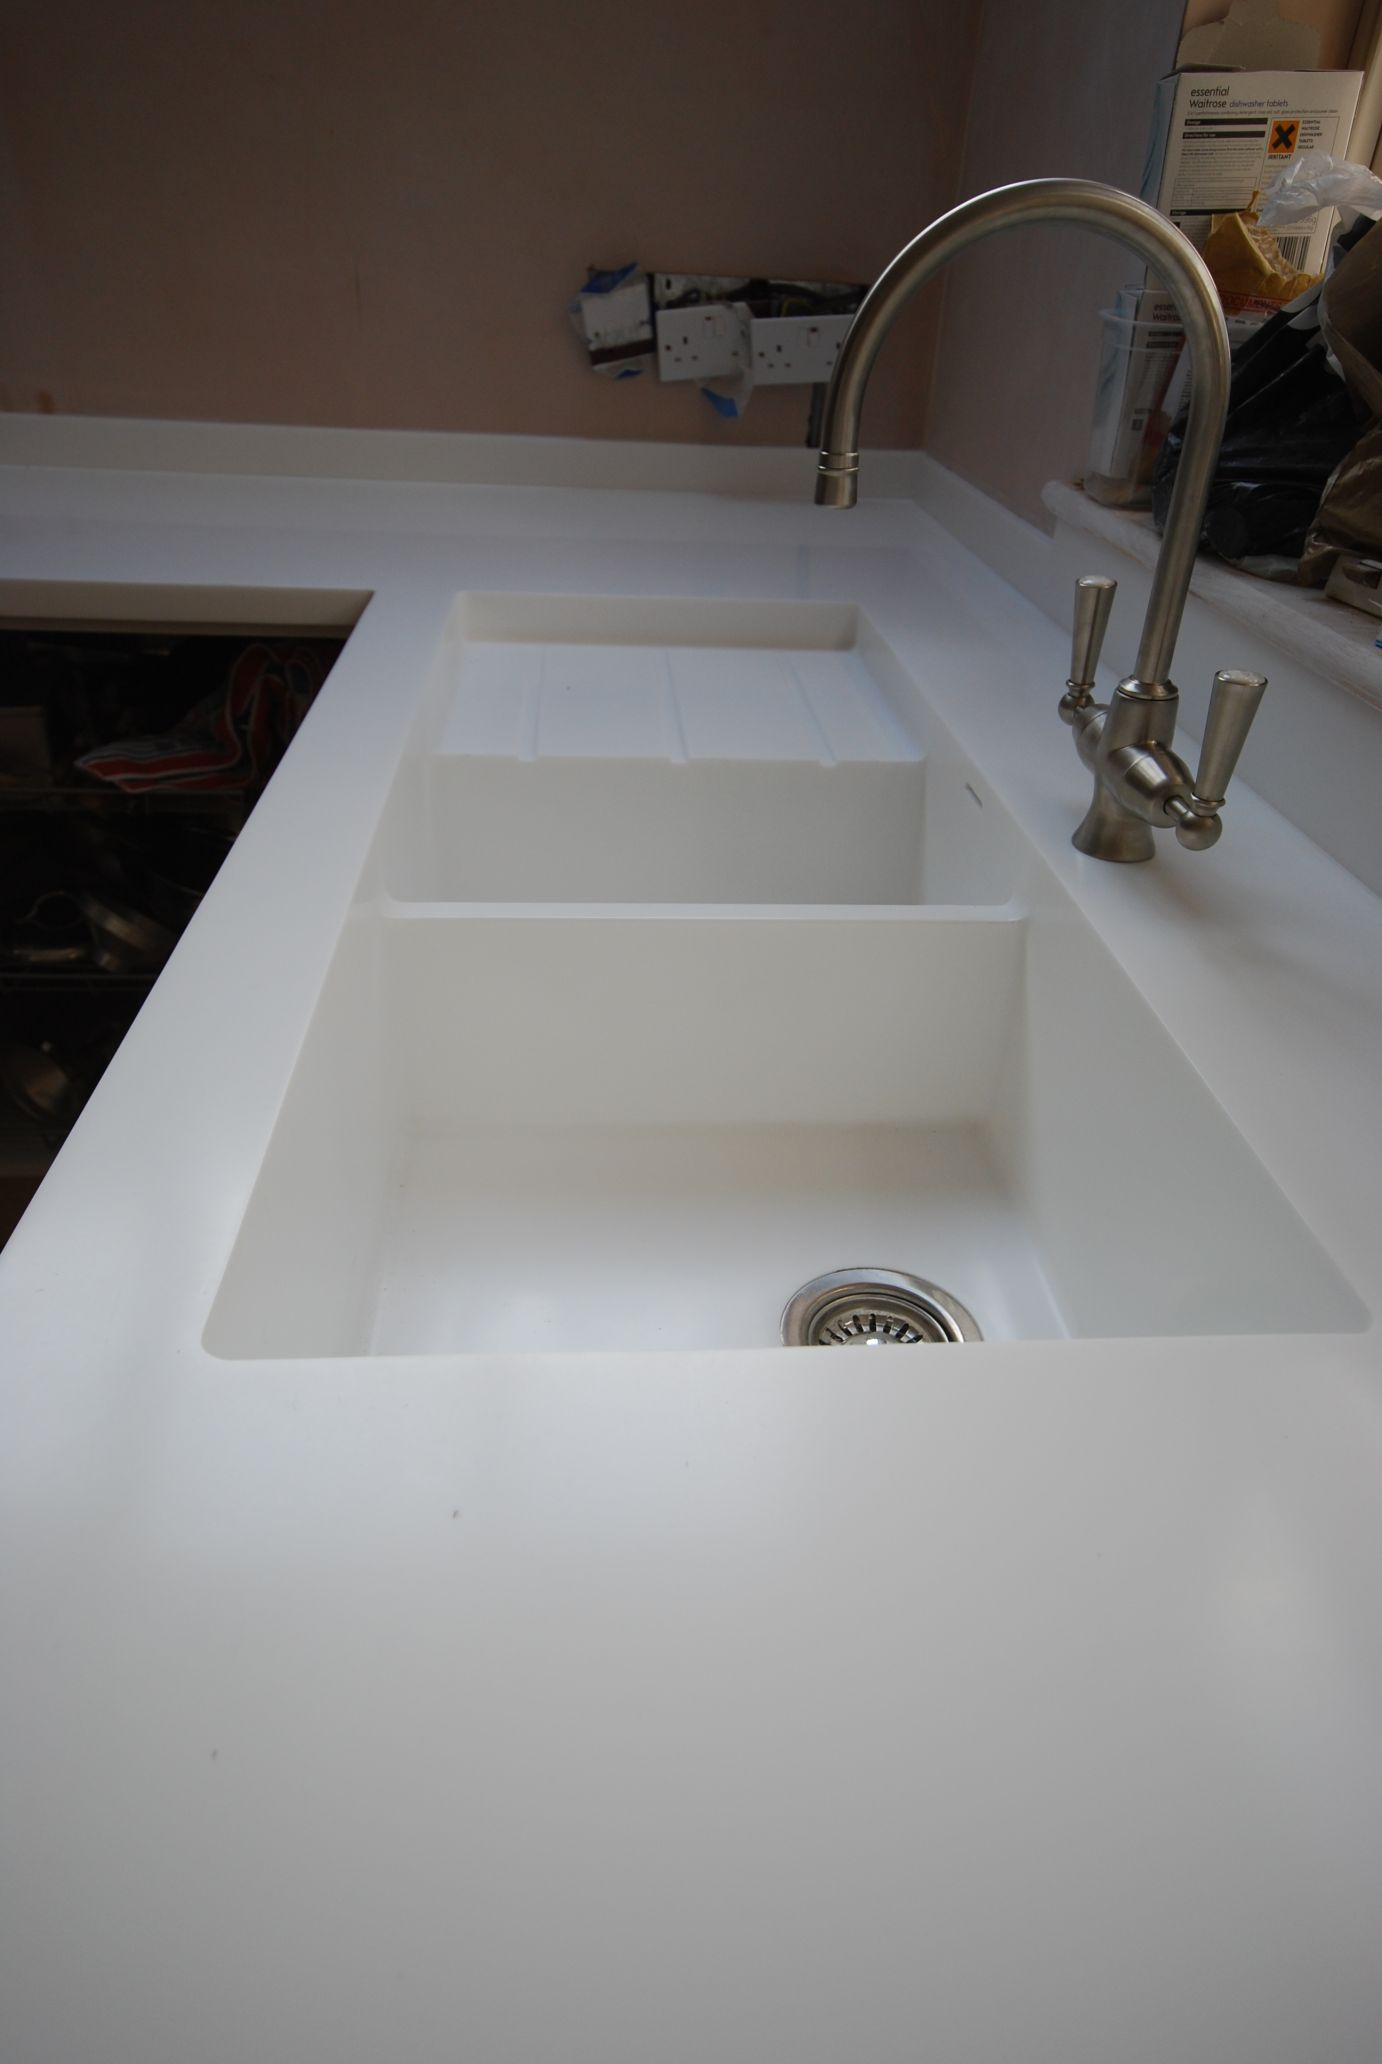 kitchen sinks draining areas solidity rh solidity co uk Corian Countertops with Integral Sink Bathroom Sink with Corian Countertops